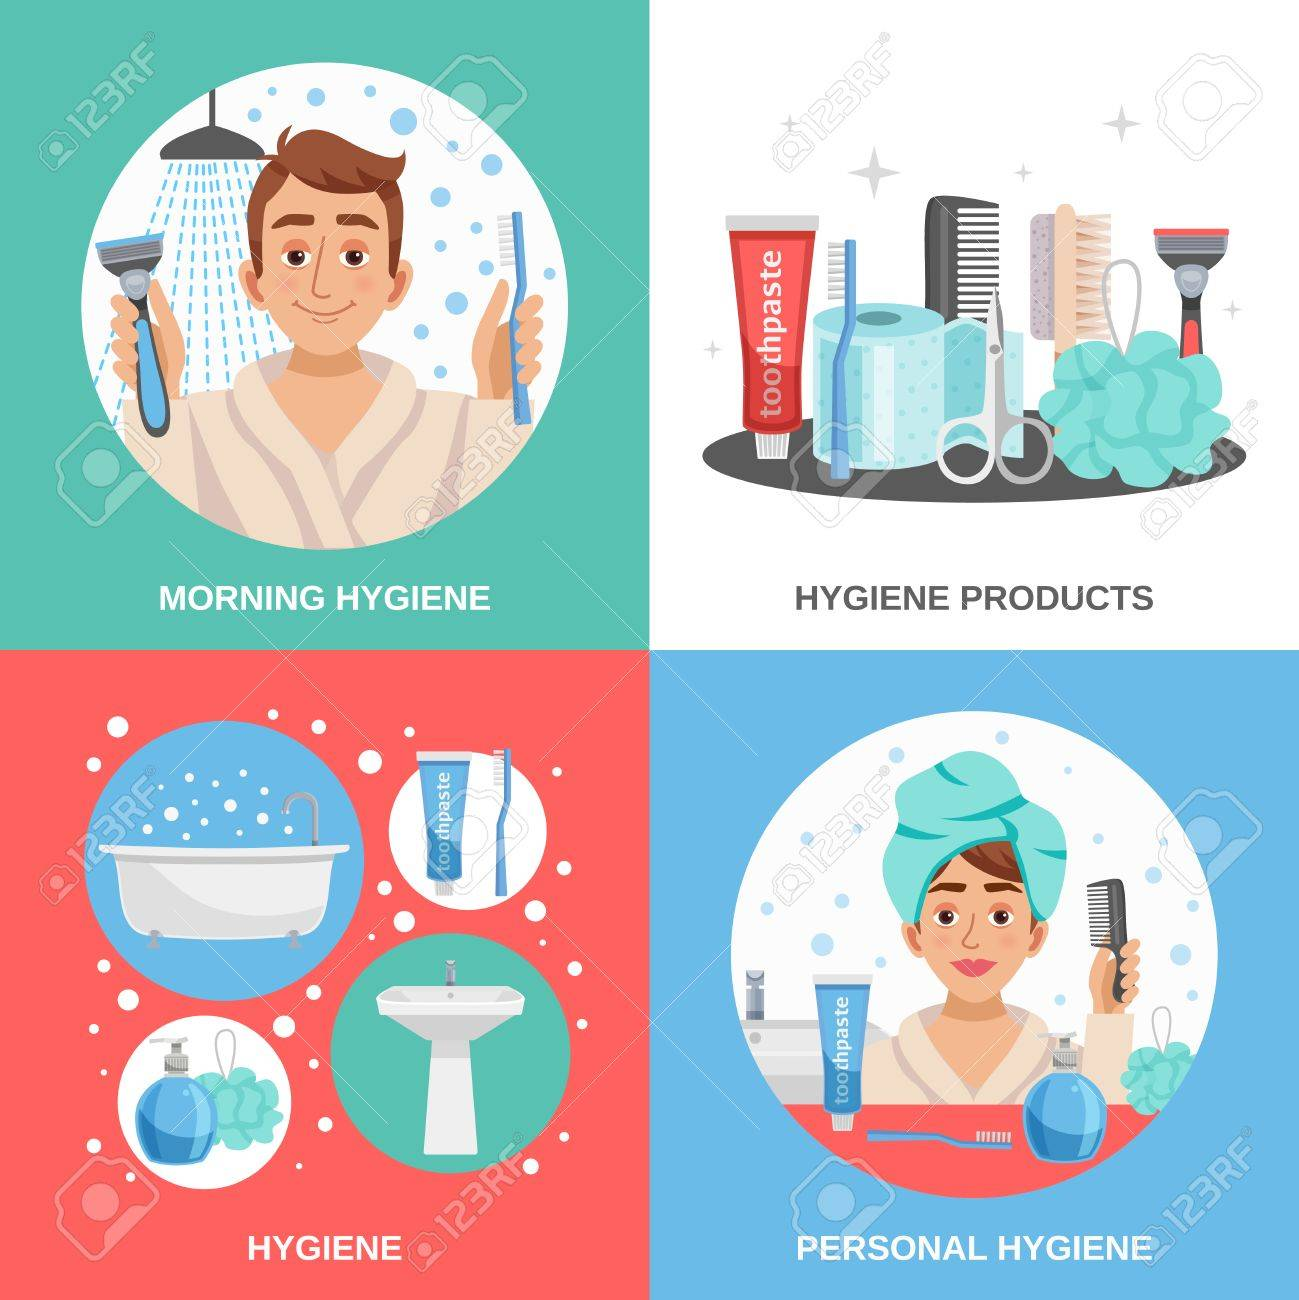 Products hygiene free personal Wholesale Personal